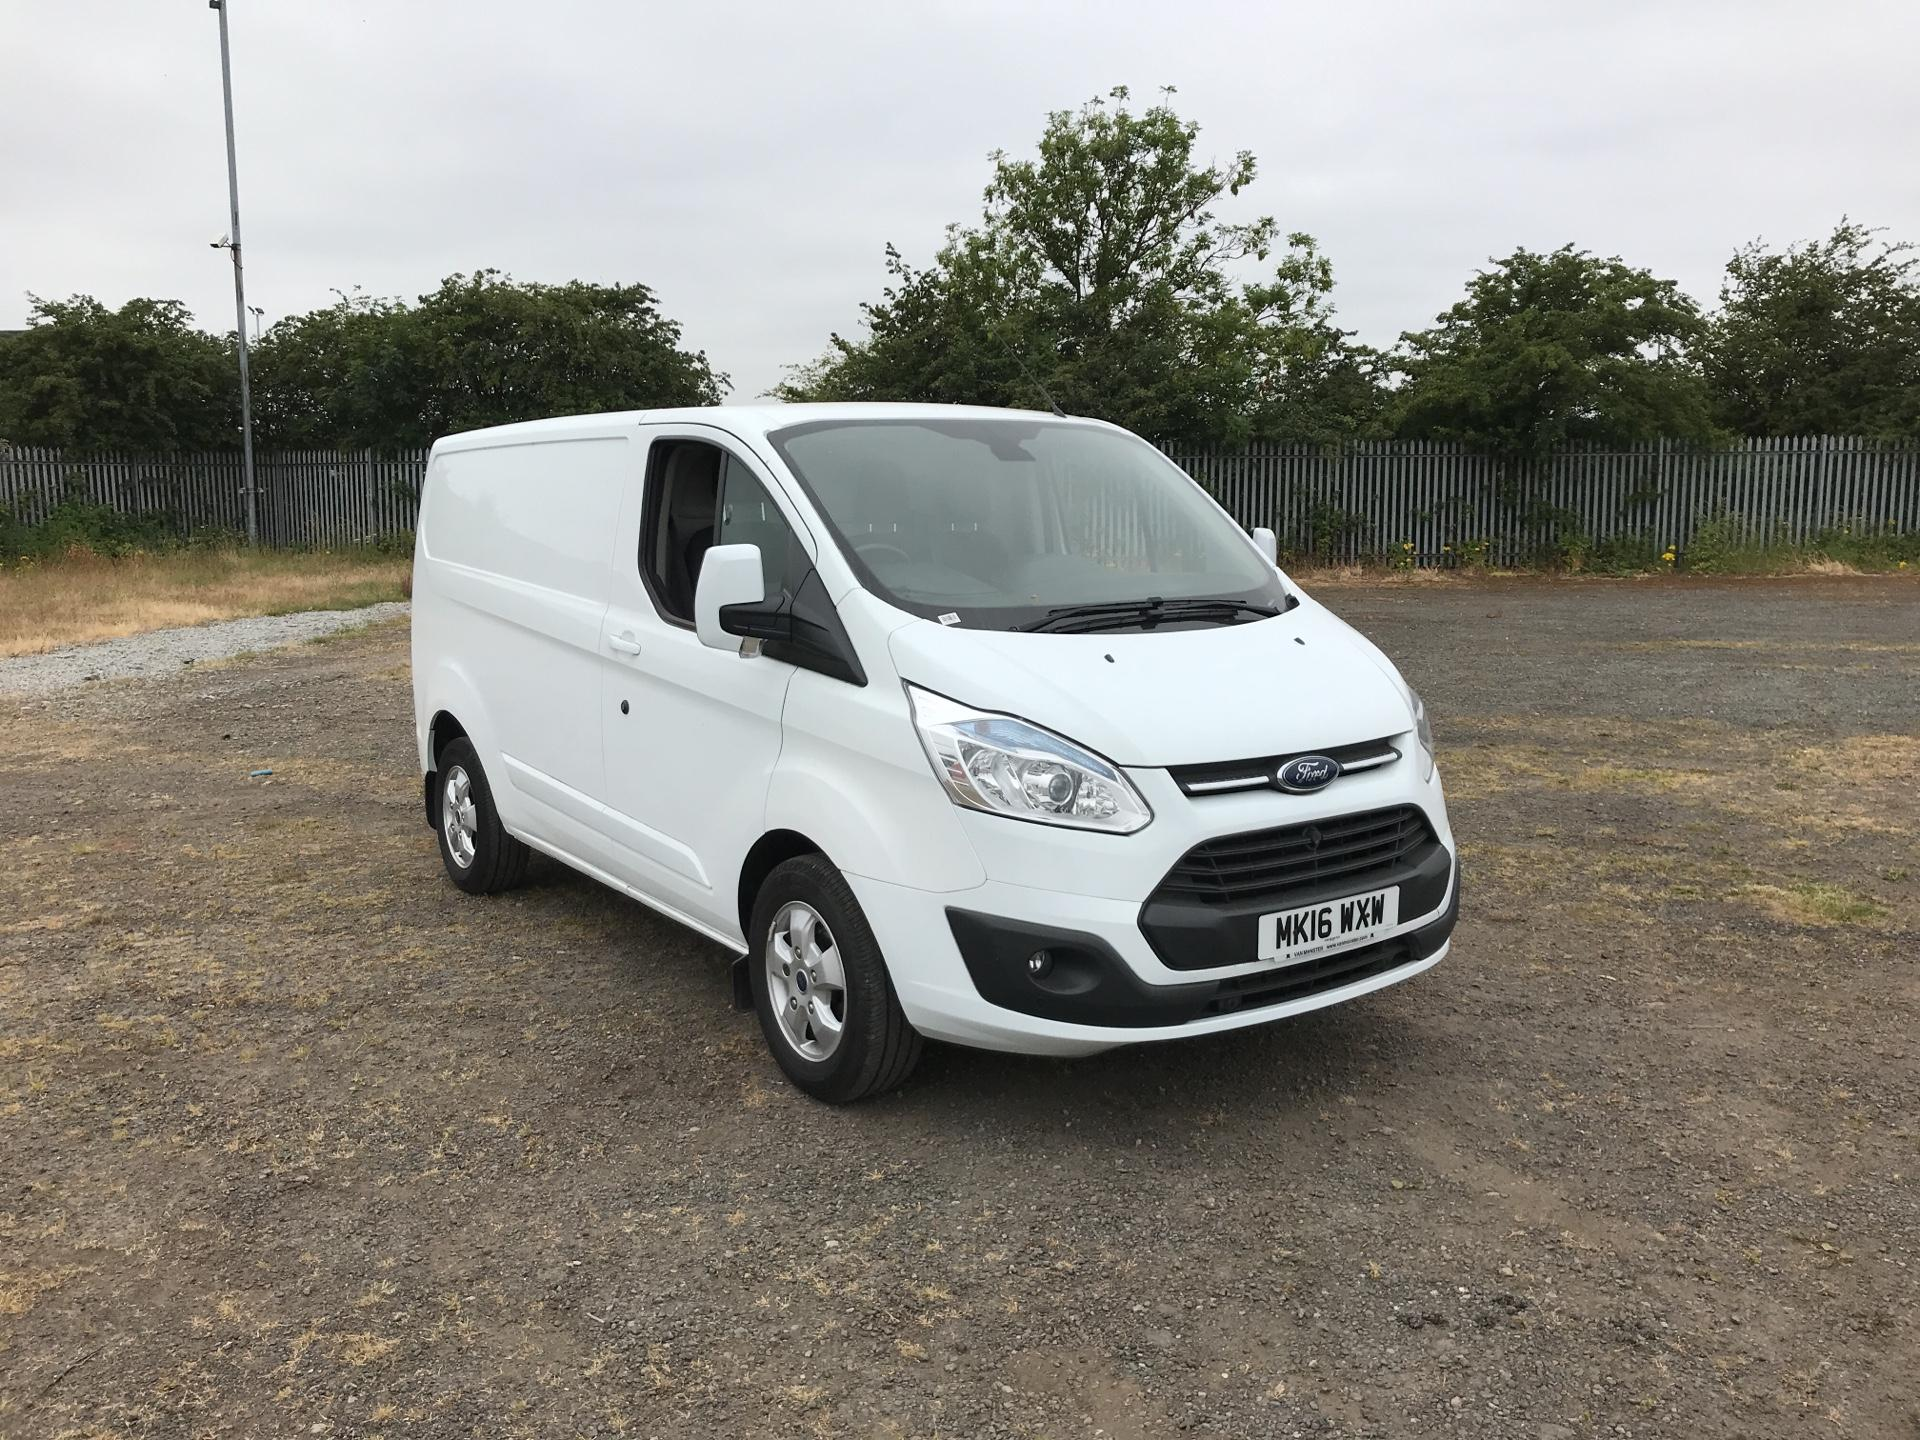 2016 Ford Transit Custom 290 L1 DIESEL FWD 2.2 Tdci 125Ps Low Roof Limited Van EURO 5 (MK16WXW)